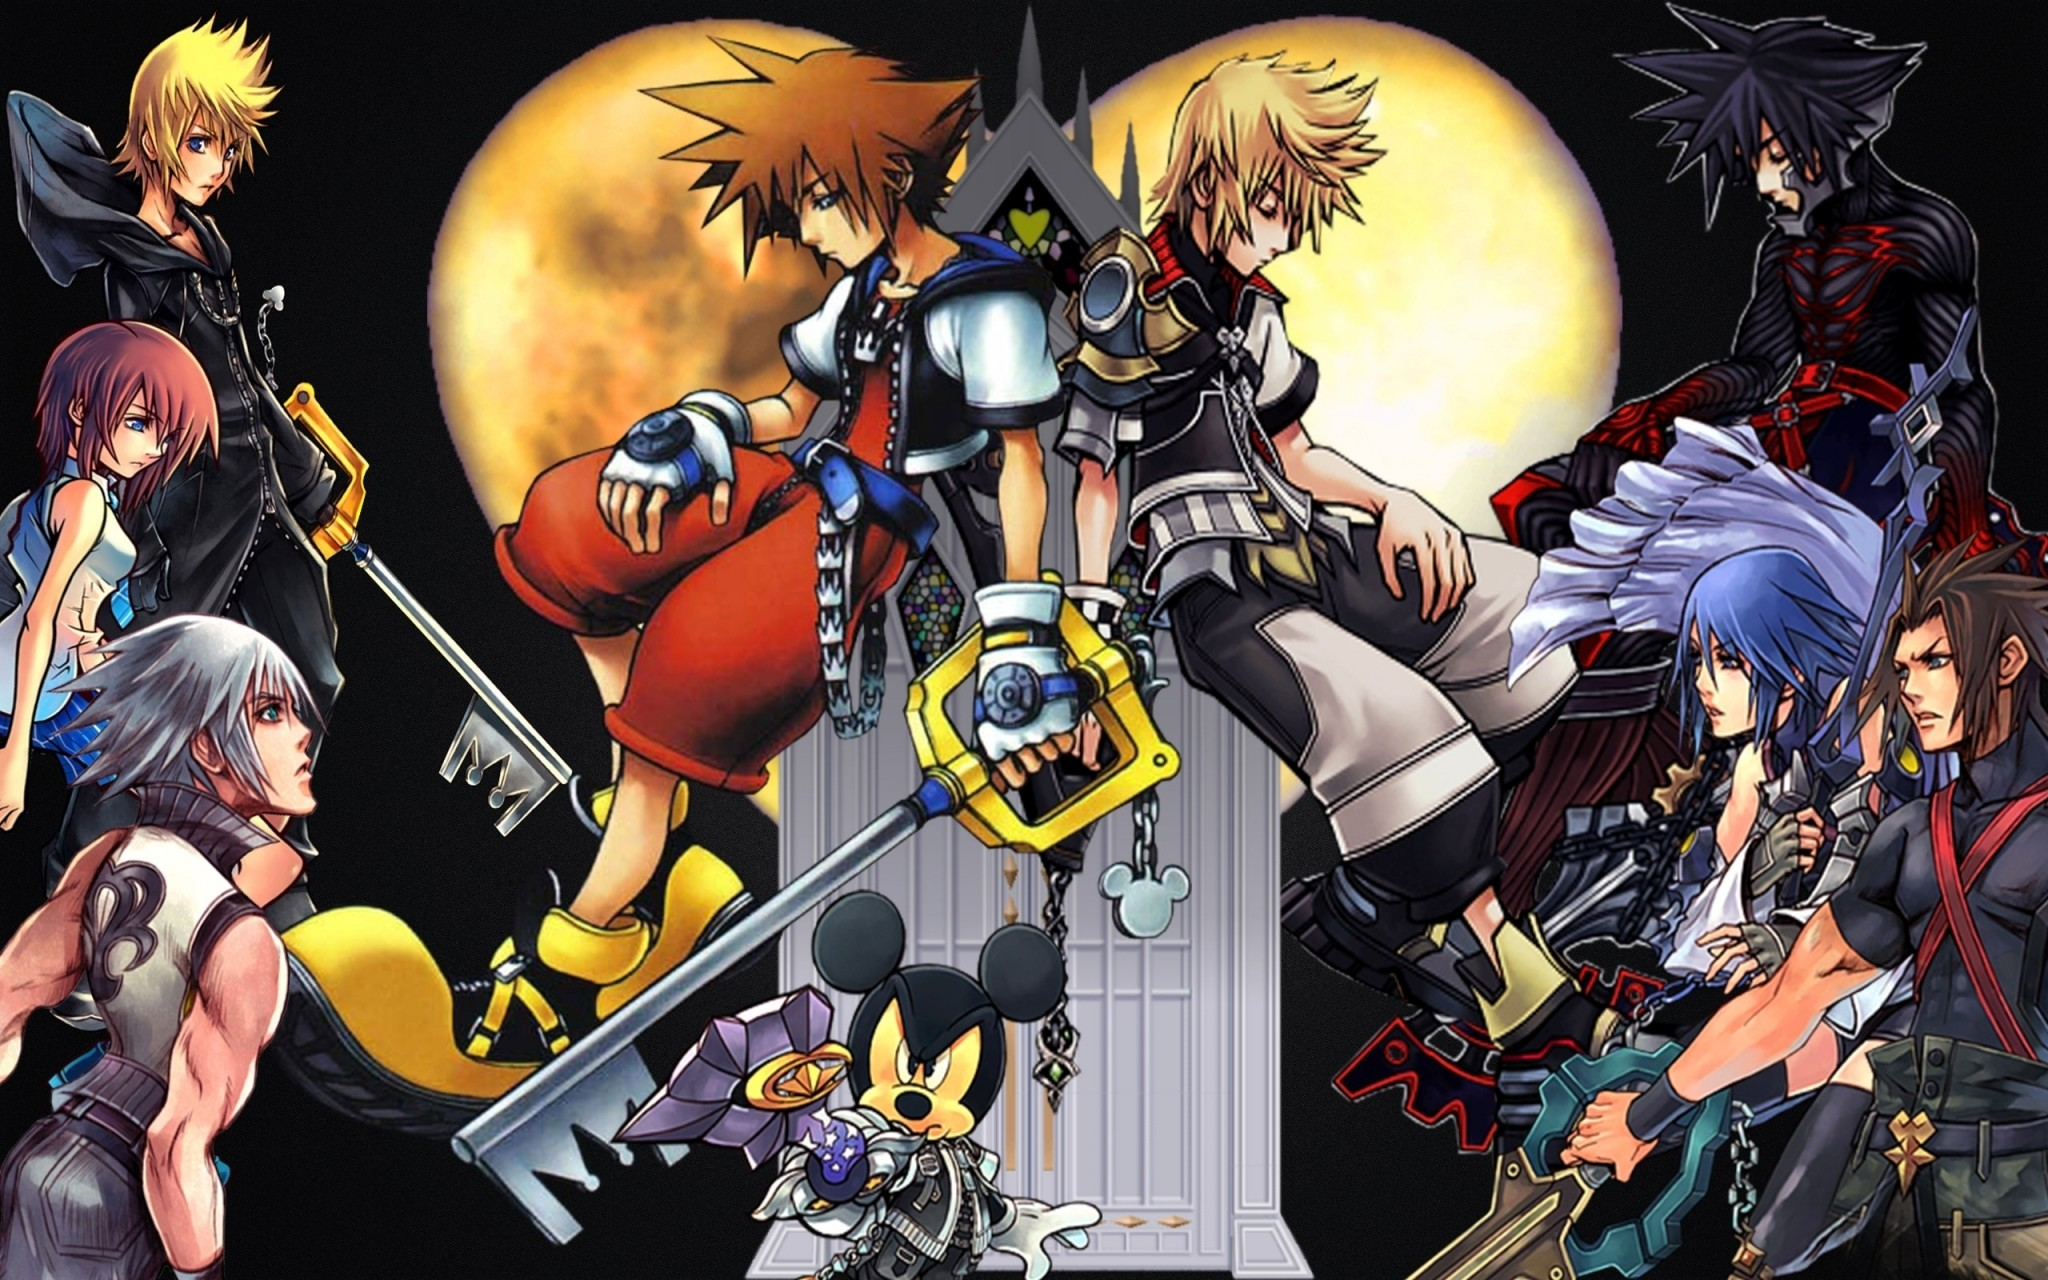 Res: 2048x1280, Kingdom Hearts Wallpaper Desktop Backgrounds.